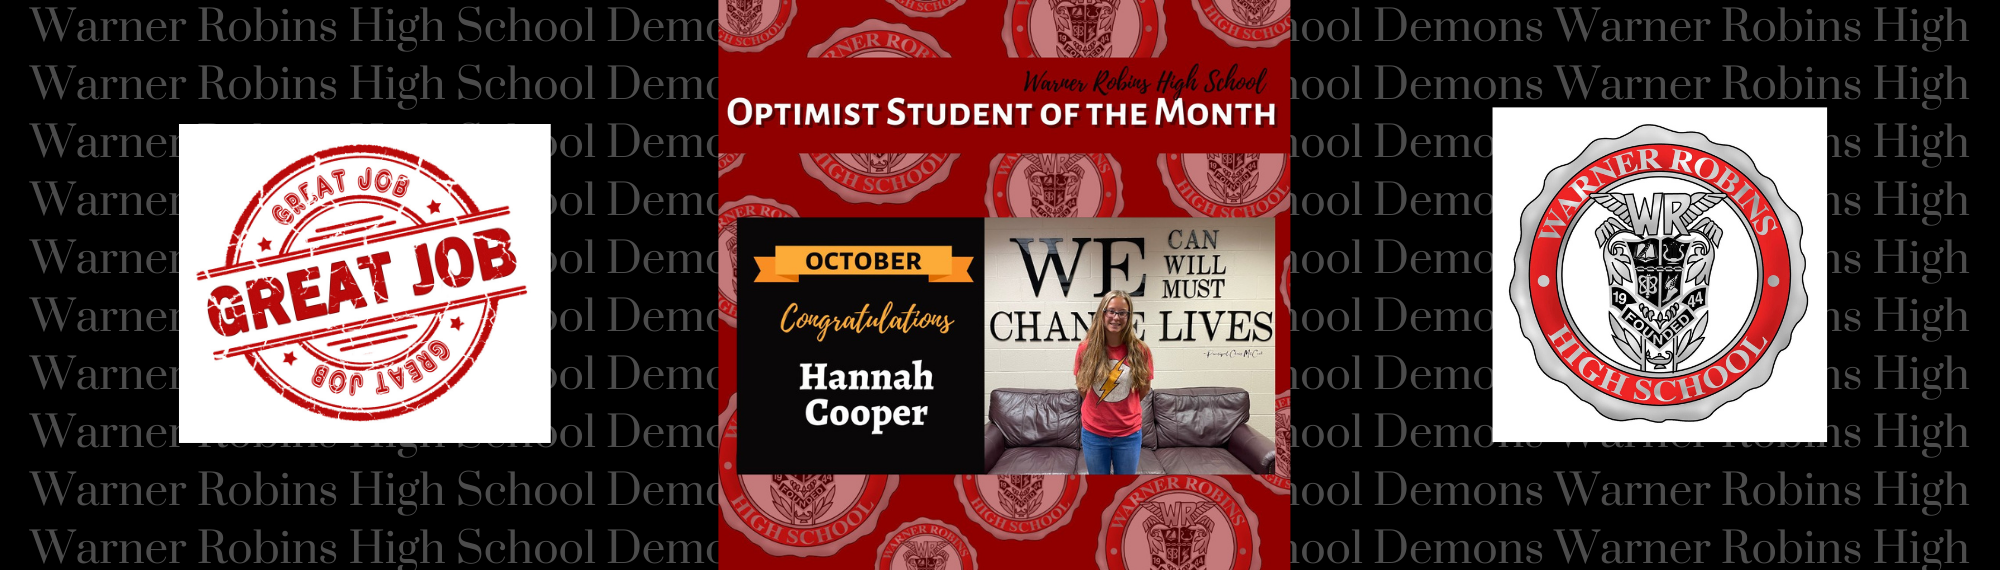 Optimist Student of the Month--October 2021